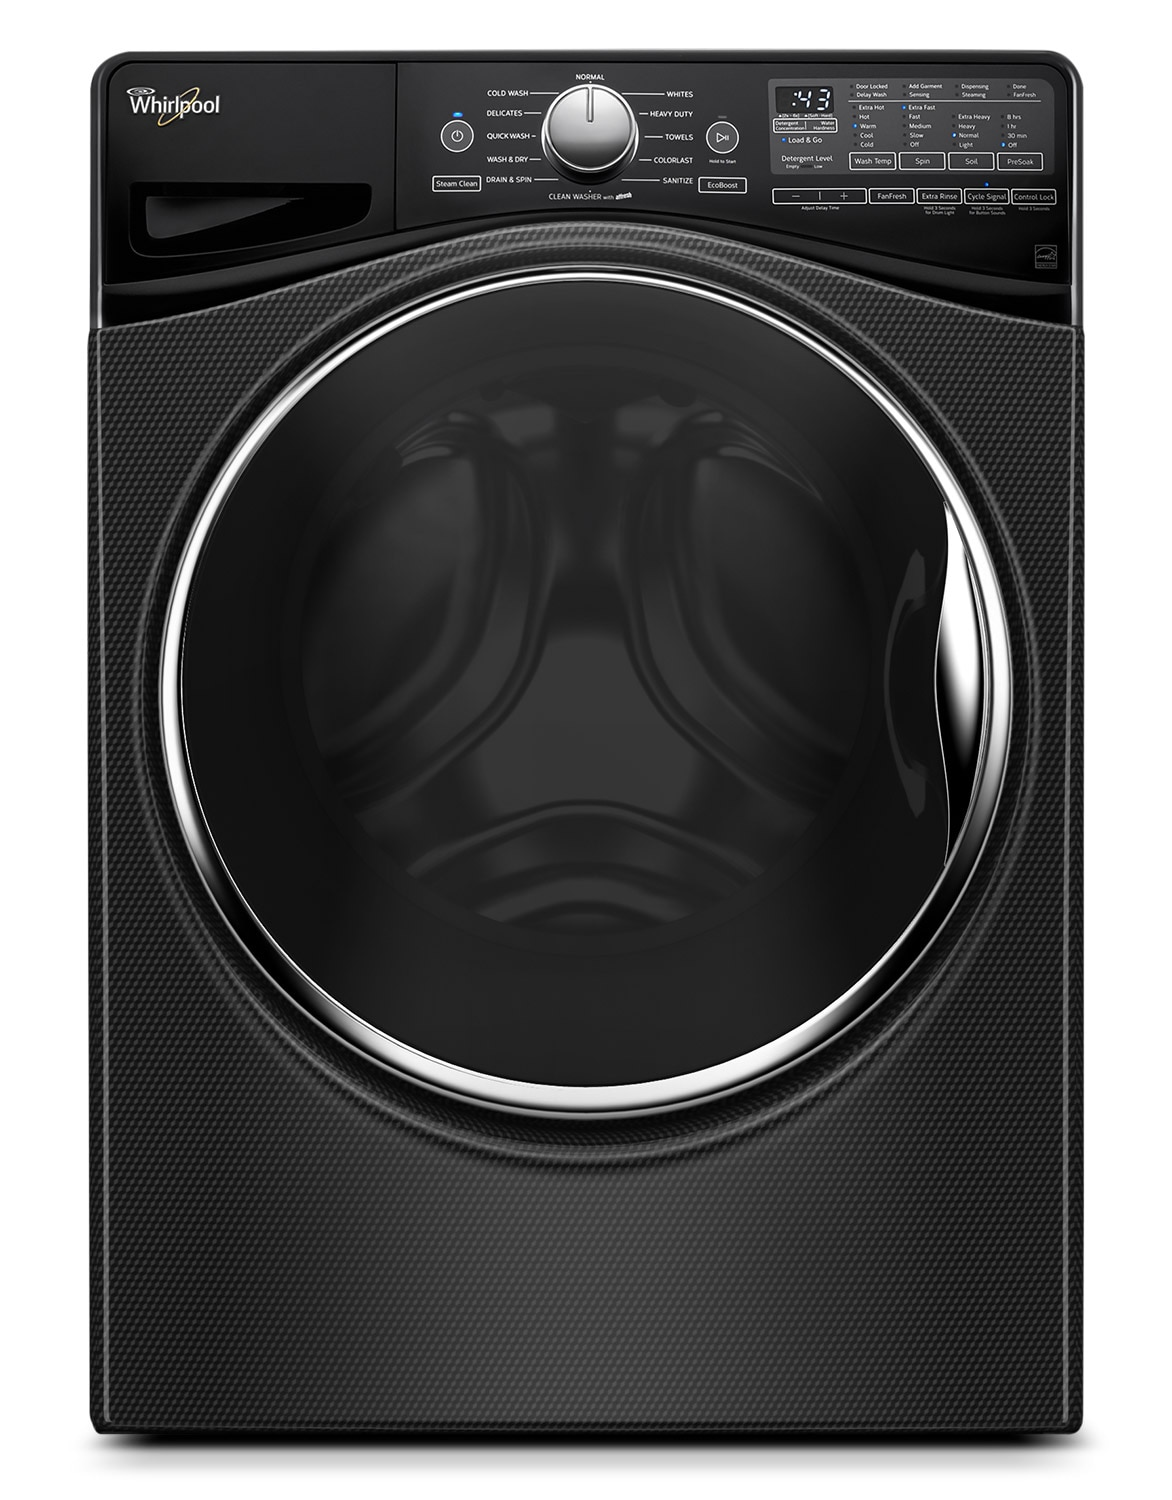 Whirlpool Black Diamond Front-Load Washer (4.6 Cu. Ft.) - WFW9290FBD